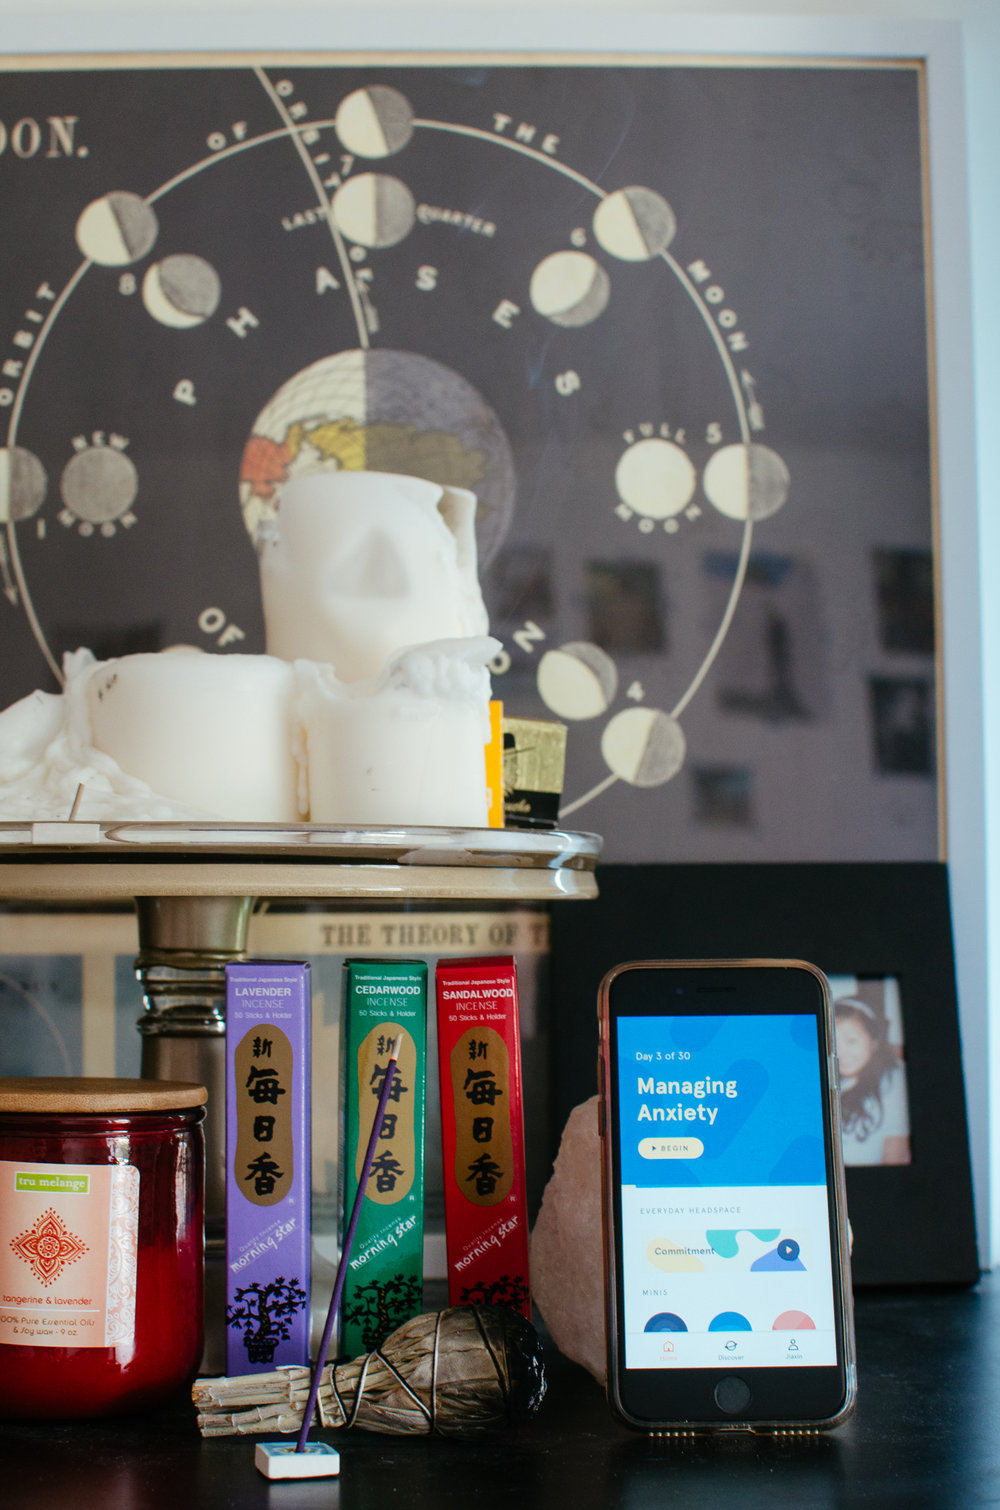 Jiaxin's Meditation Corner: Incense, candles, sage, and the Headspace app open